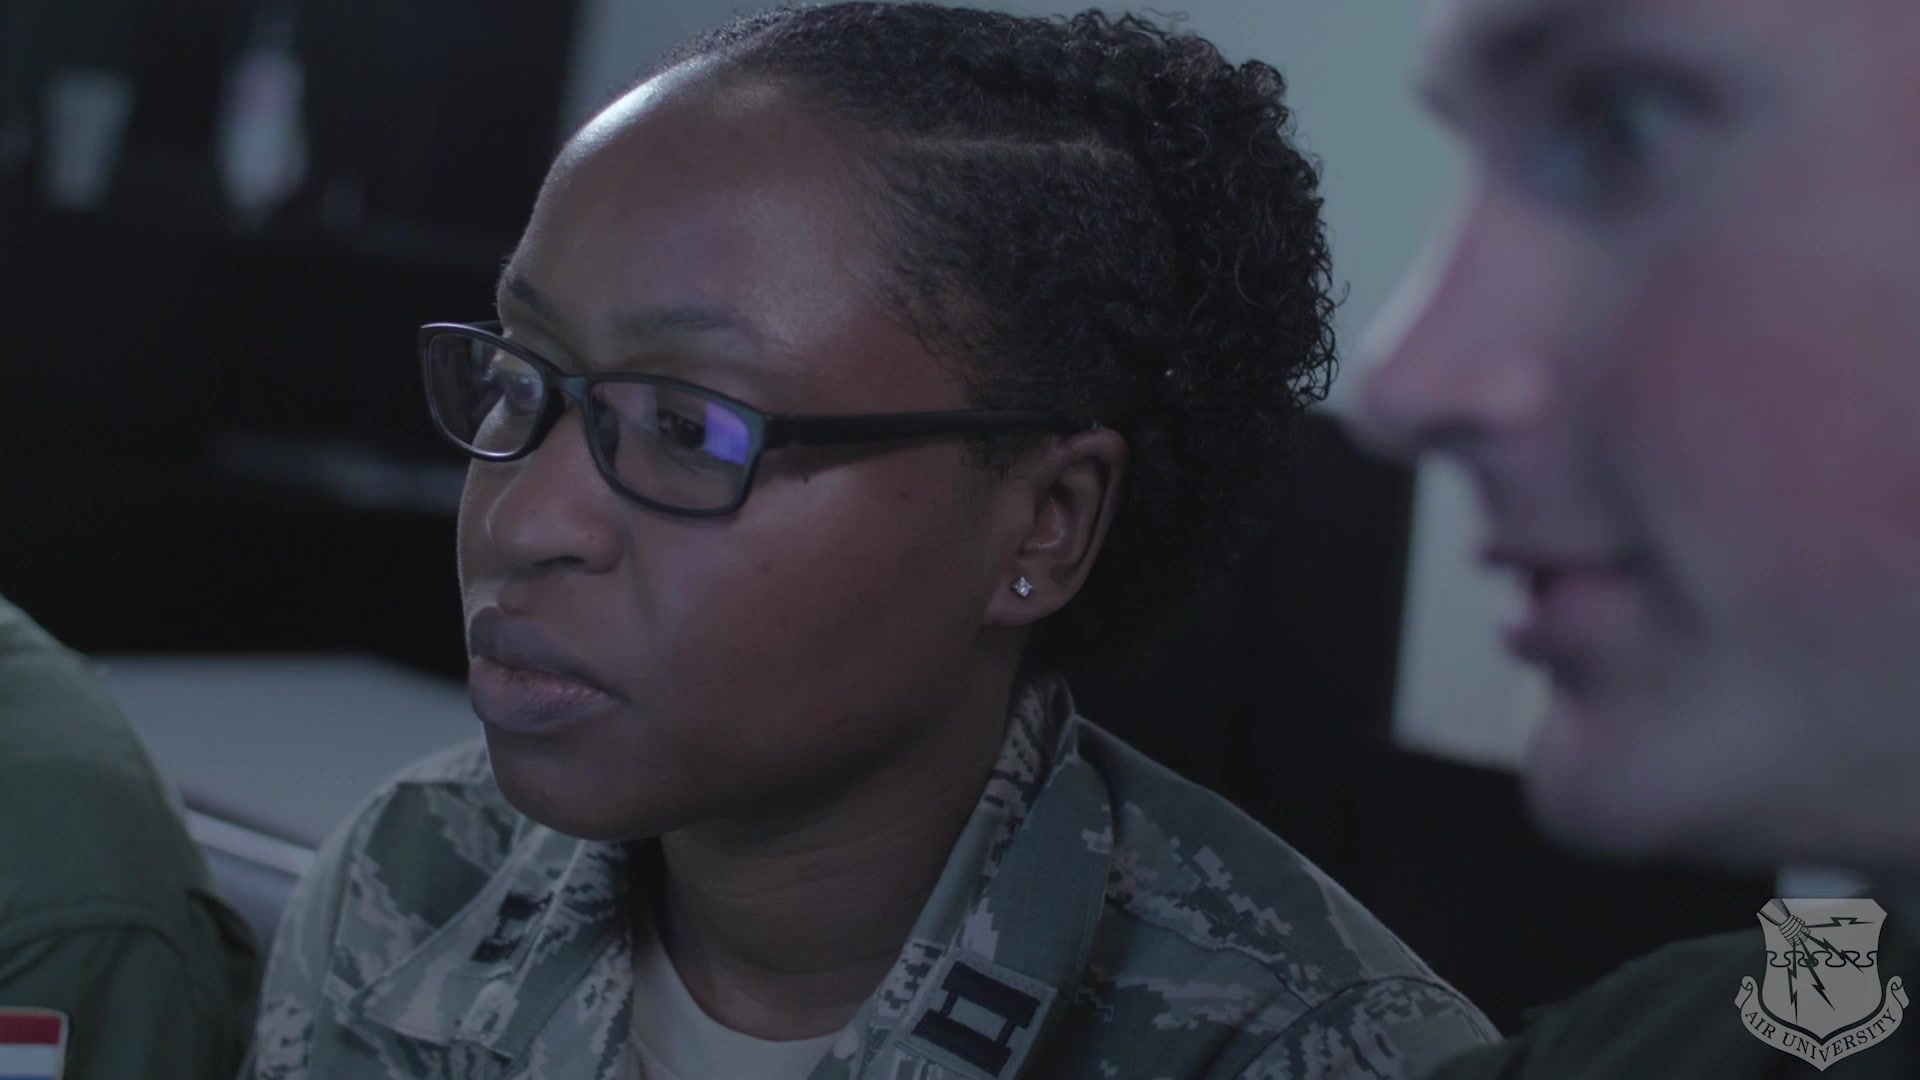 Video encompasses Squadron Officer School programs and highlights attributes such as curriculum relevance, physical / virtual learning environments, faculty development, develop joint leaders and teams, multi-domain command and control, drive innovation and education technology, strengthen our alliances and build partnerships.